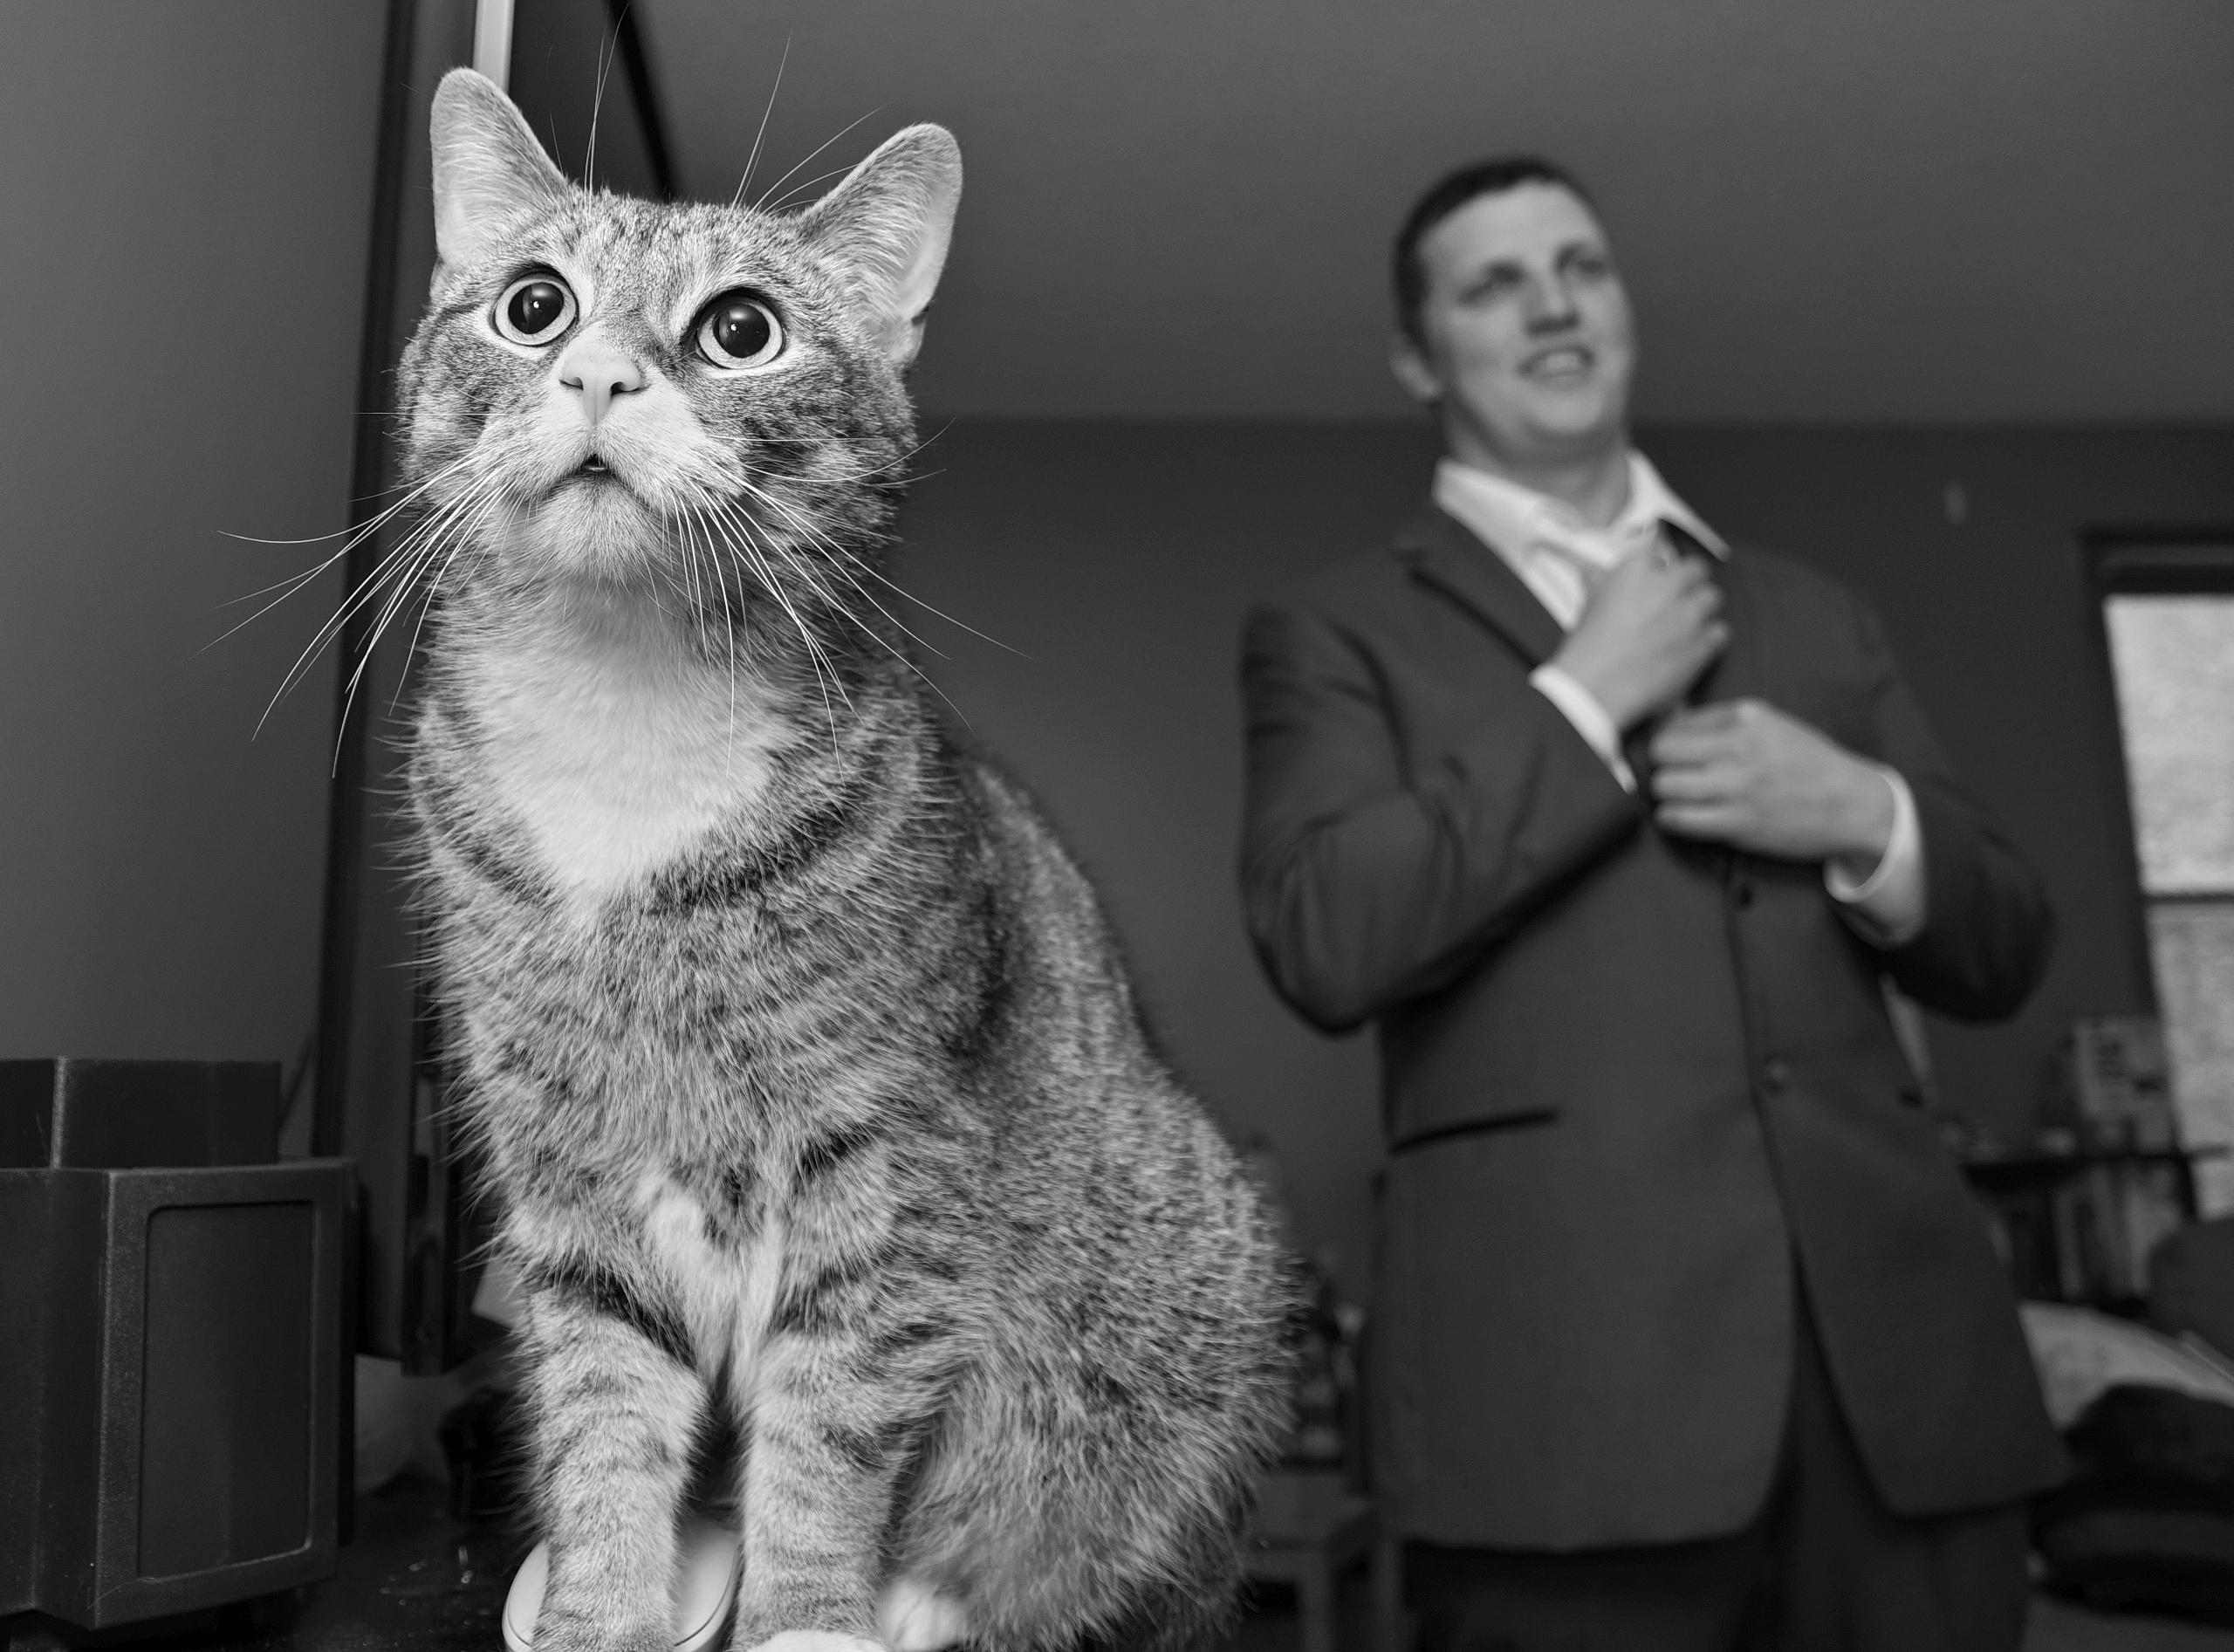 curious cat looks on as groom ties his tie